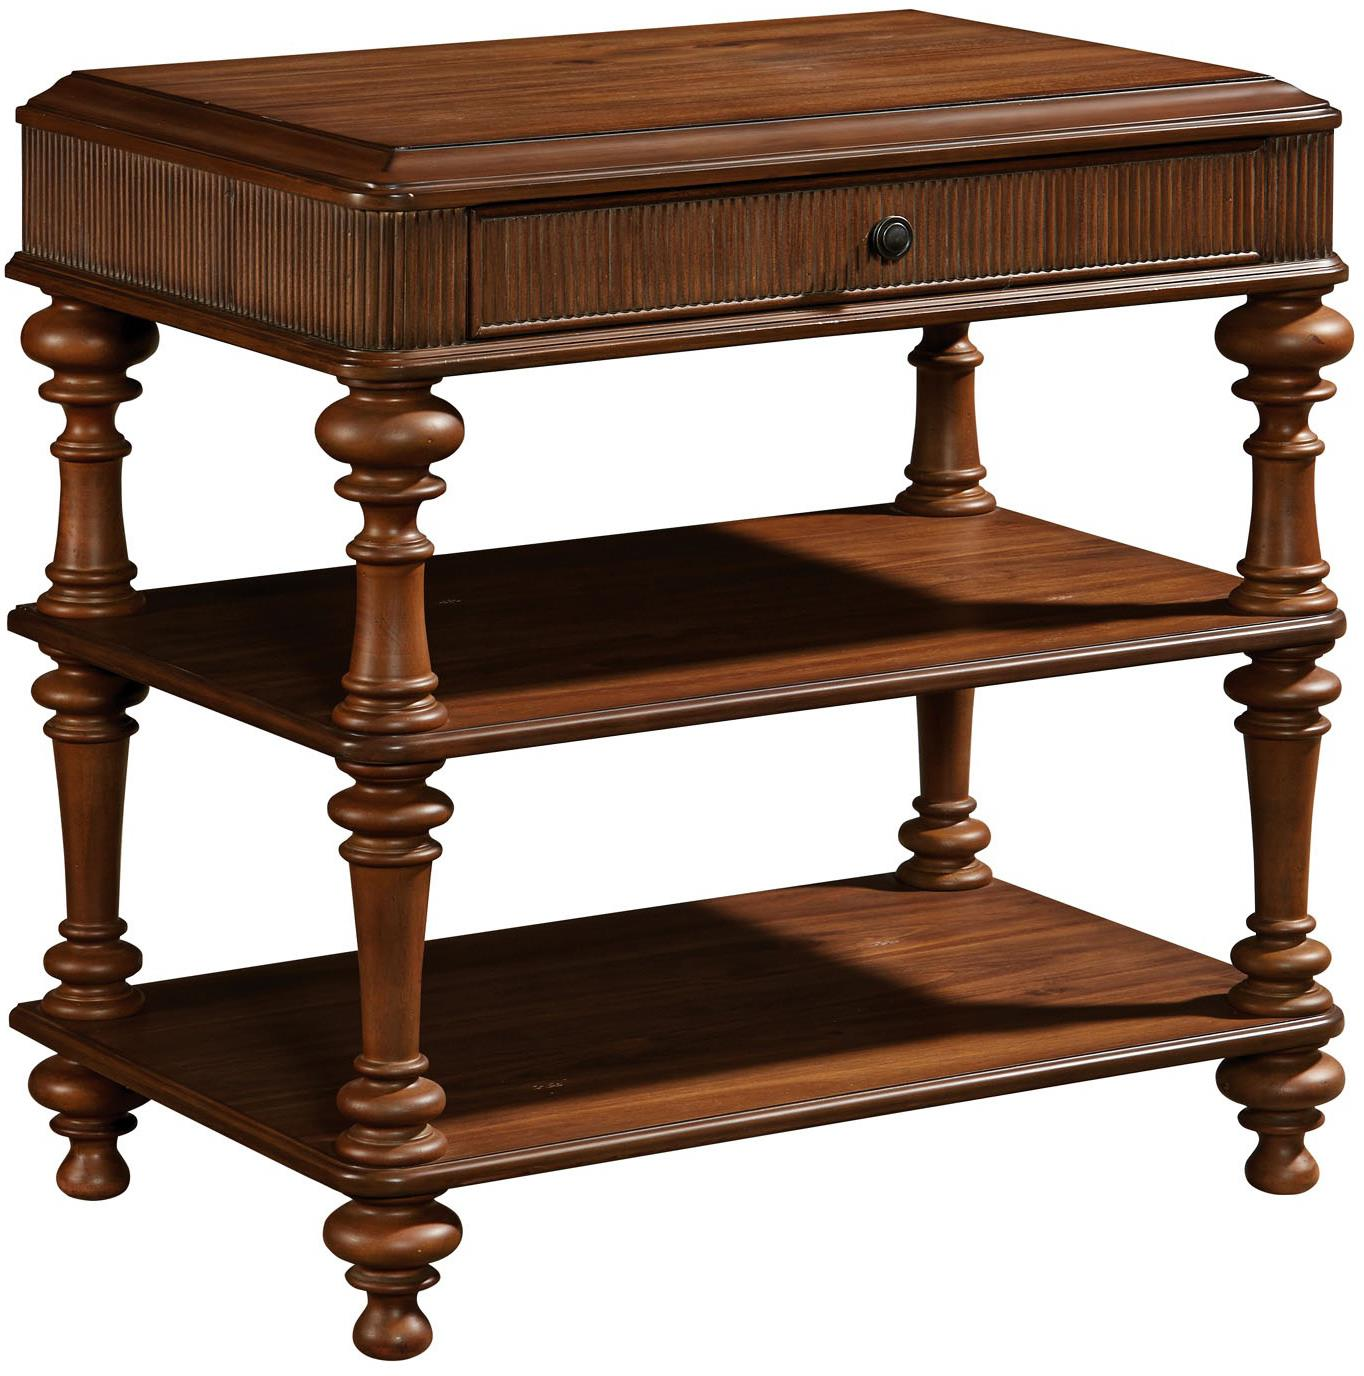 Broyhill Furniture Cascade Night Table - Item Number: 4940-291